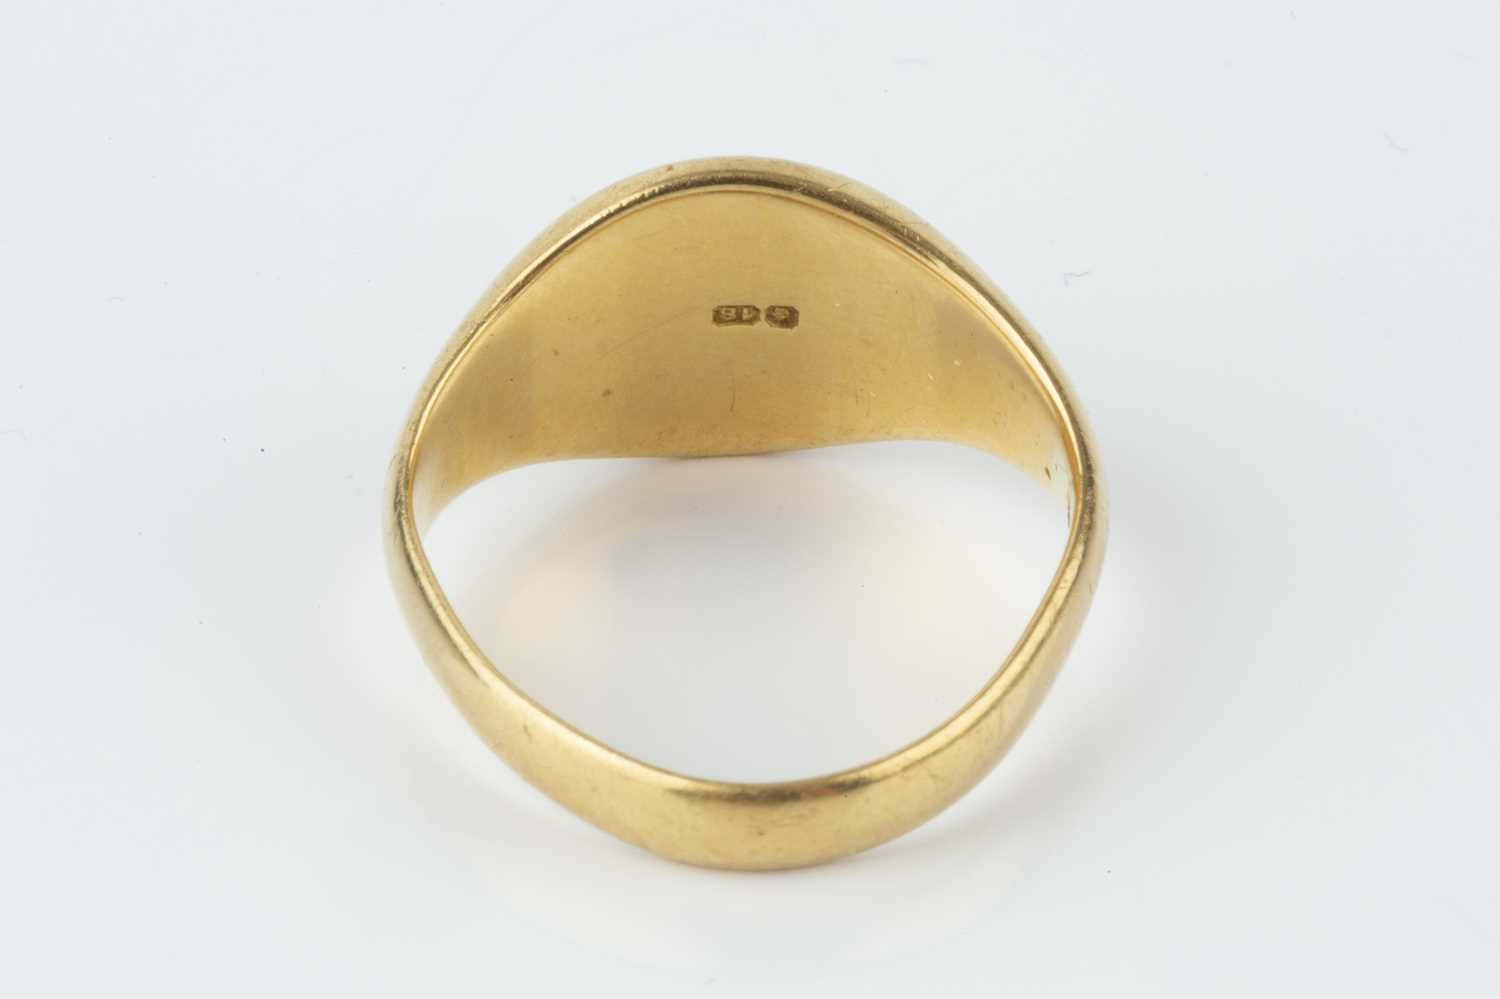 An 18ct gold signet ring, hallmarked for Birmingham 1925, monogrammed, ring size approximately - Image 3 of 3